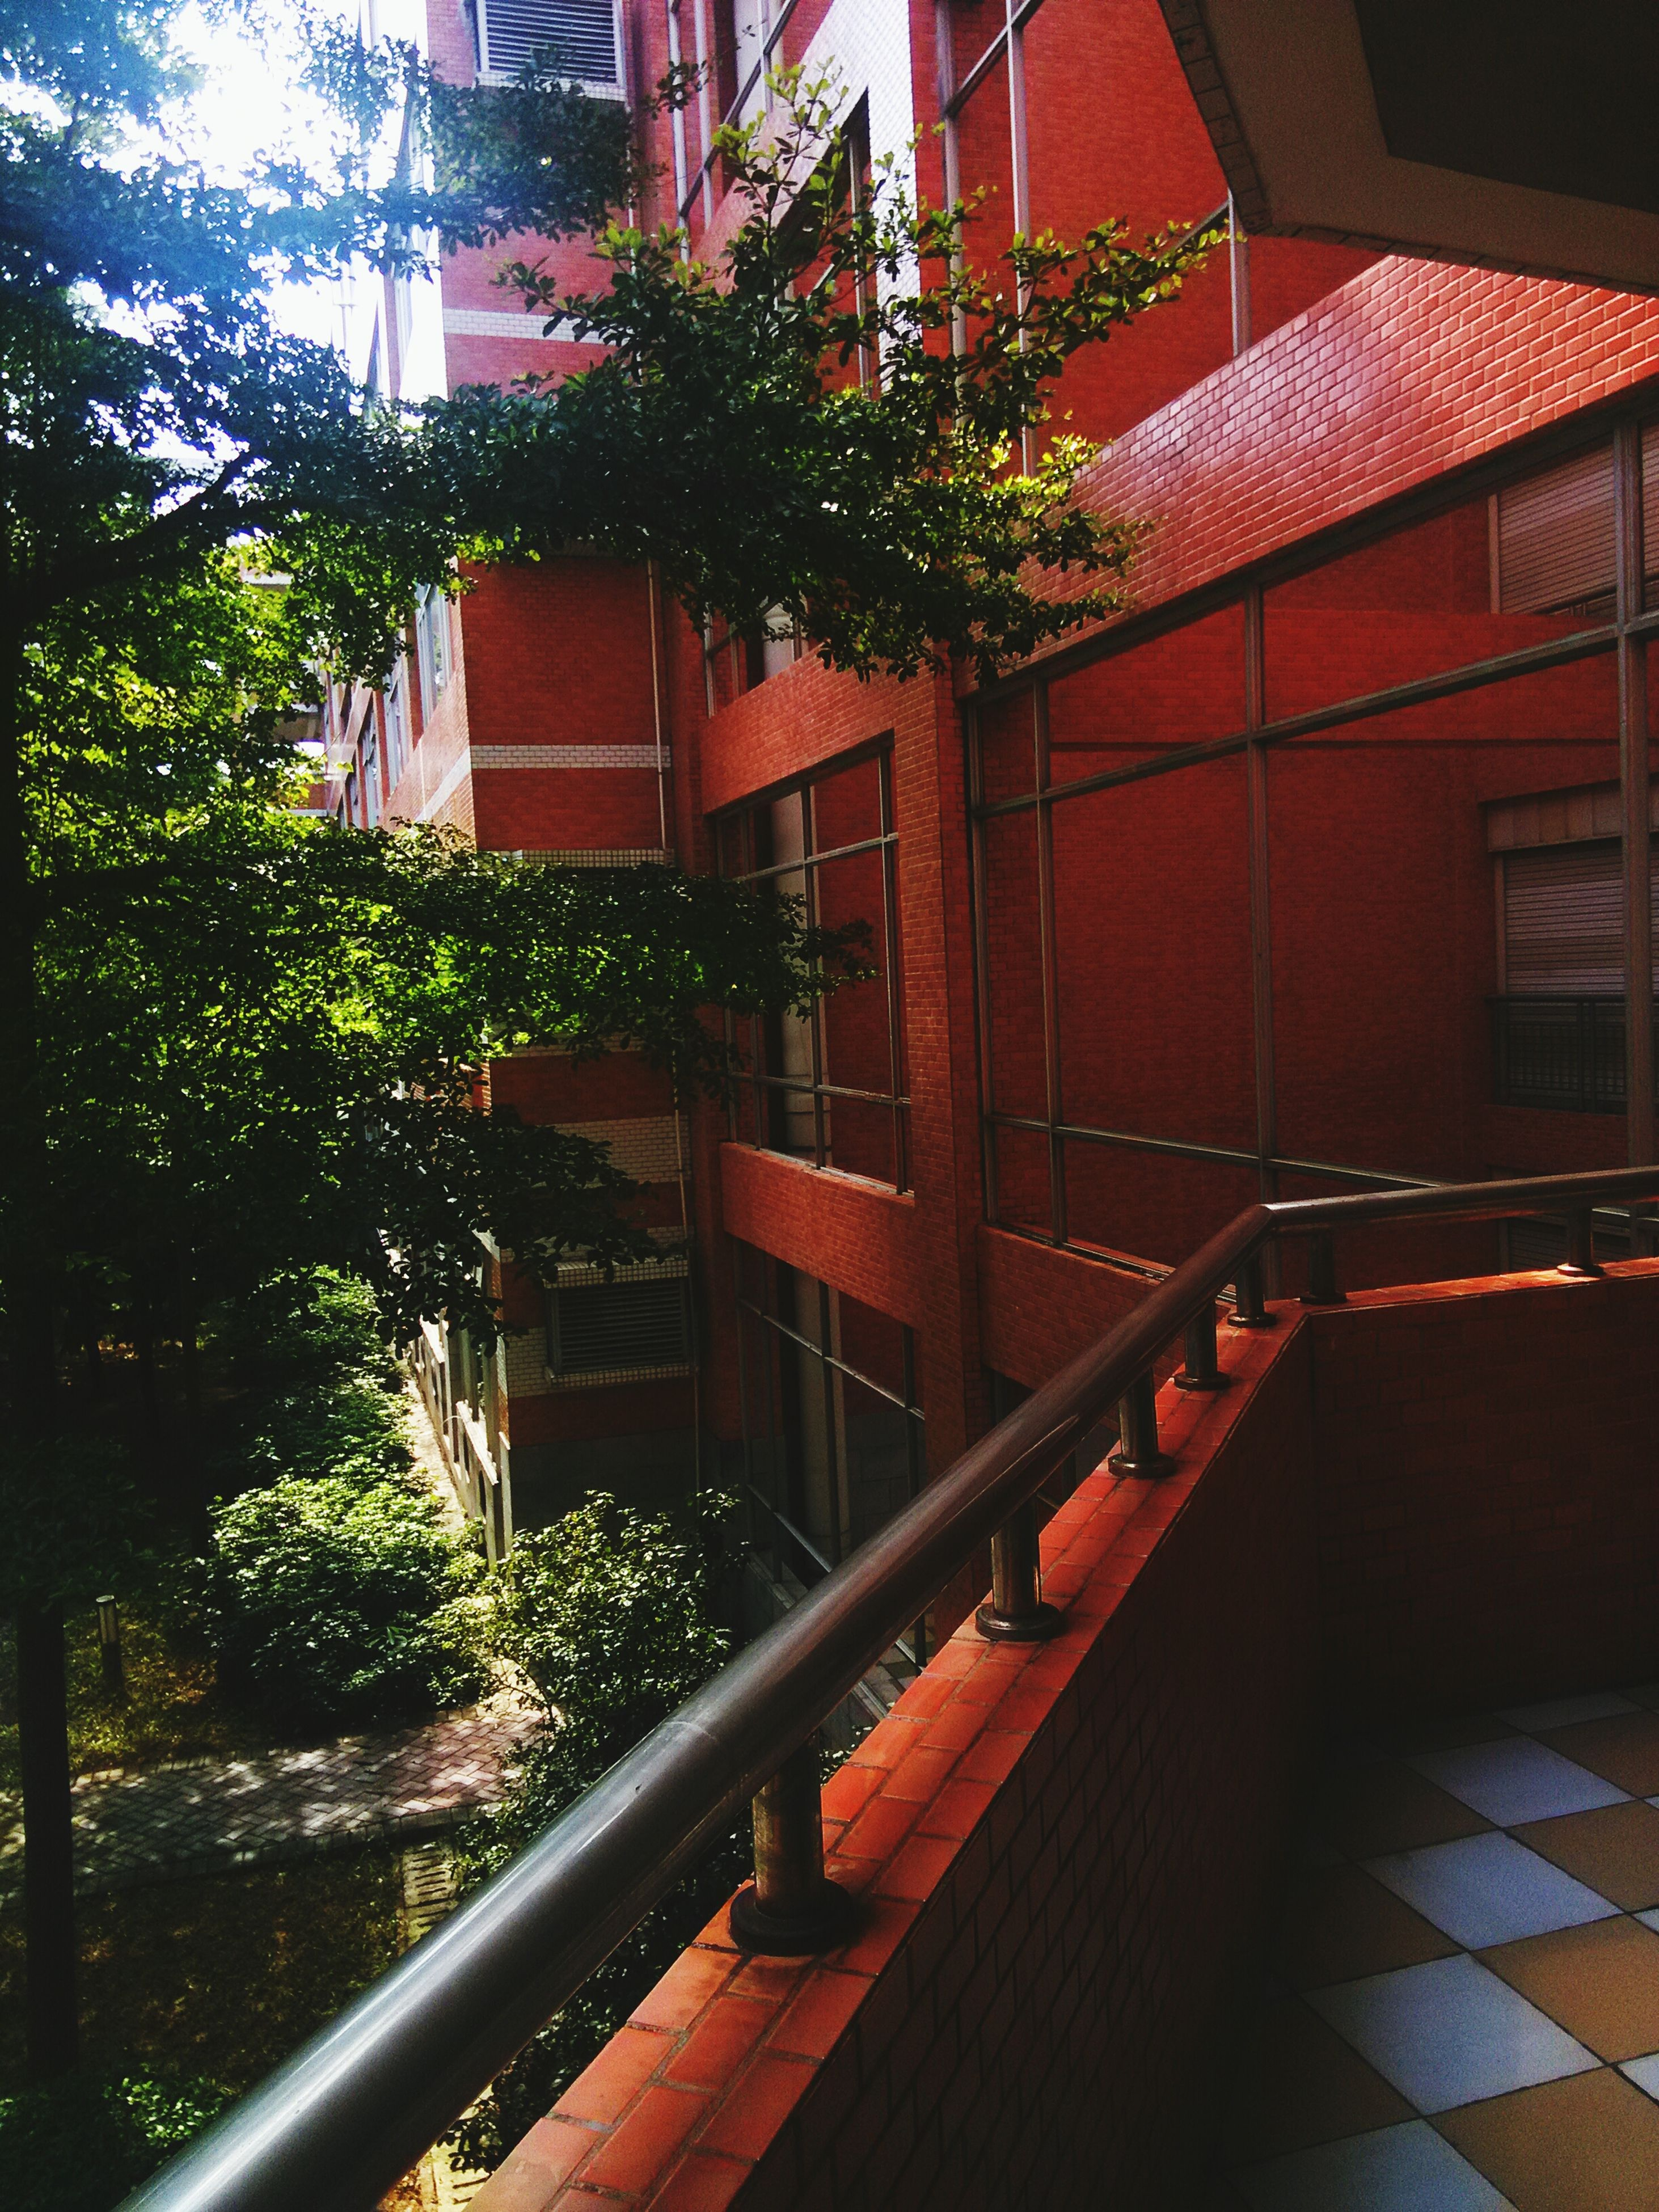 built structure, architecture, building exterior, railing, steps, staircase, steps and staircases, house, tree, residential structure, plant, residential building, red, growth, sunlight, outdoors, day, no people, balcony, the way forward